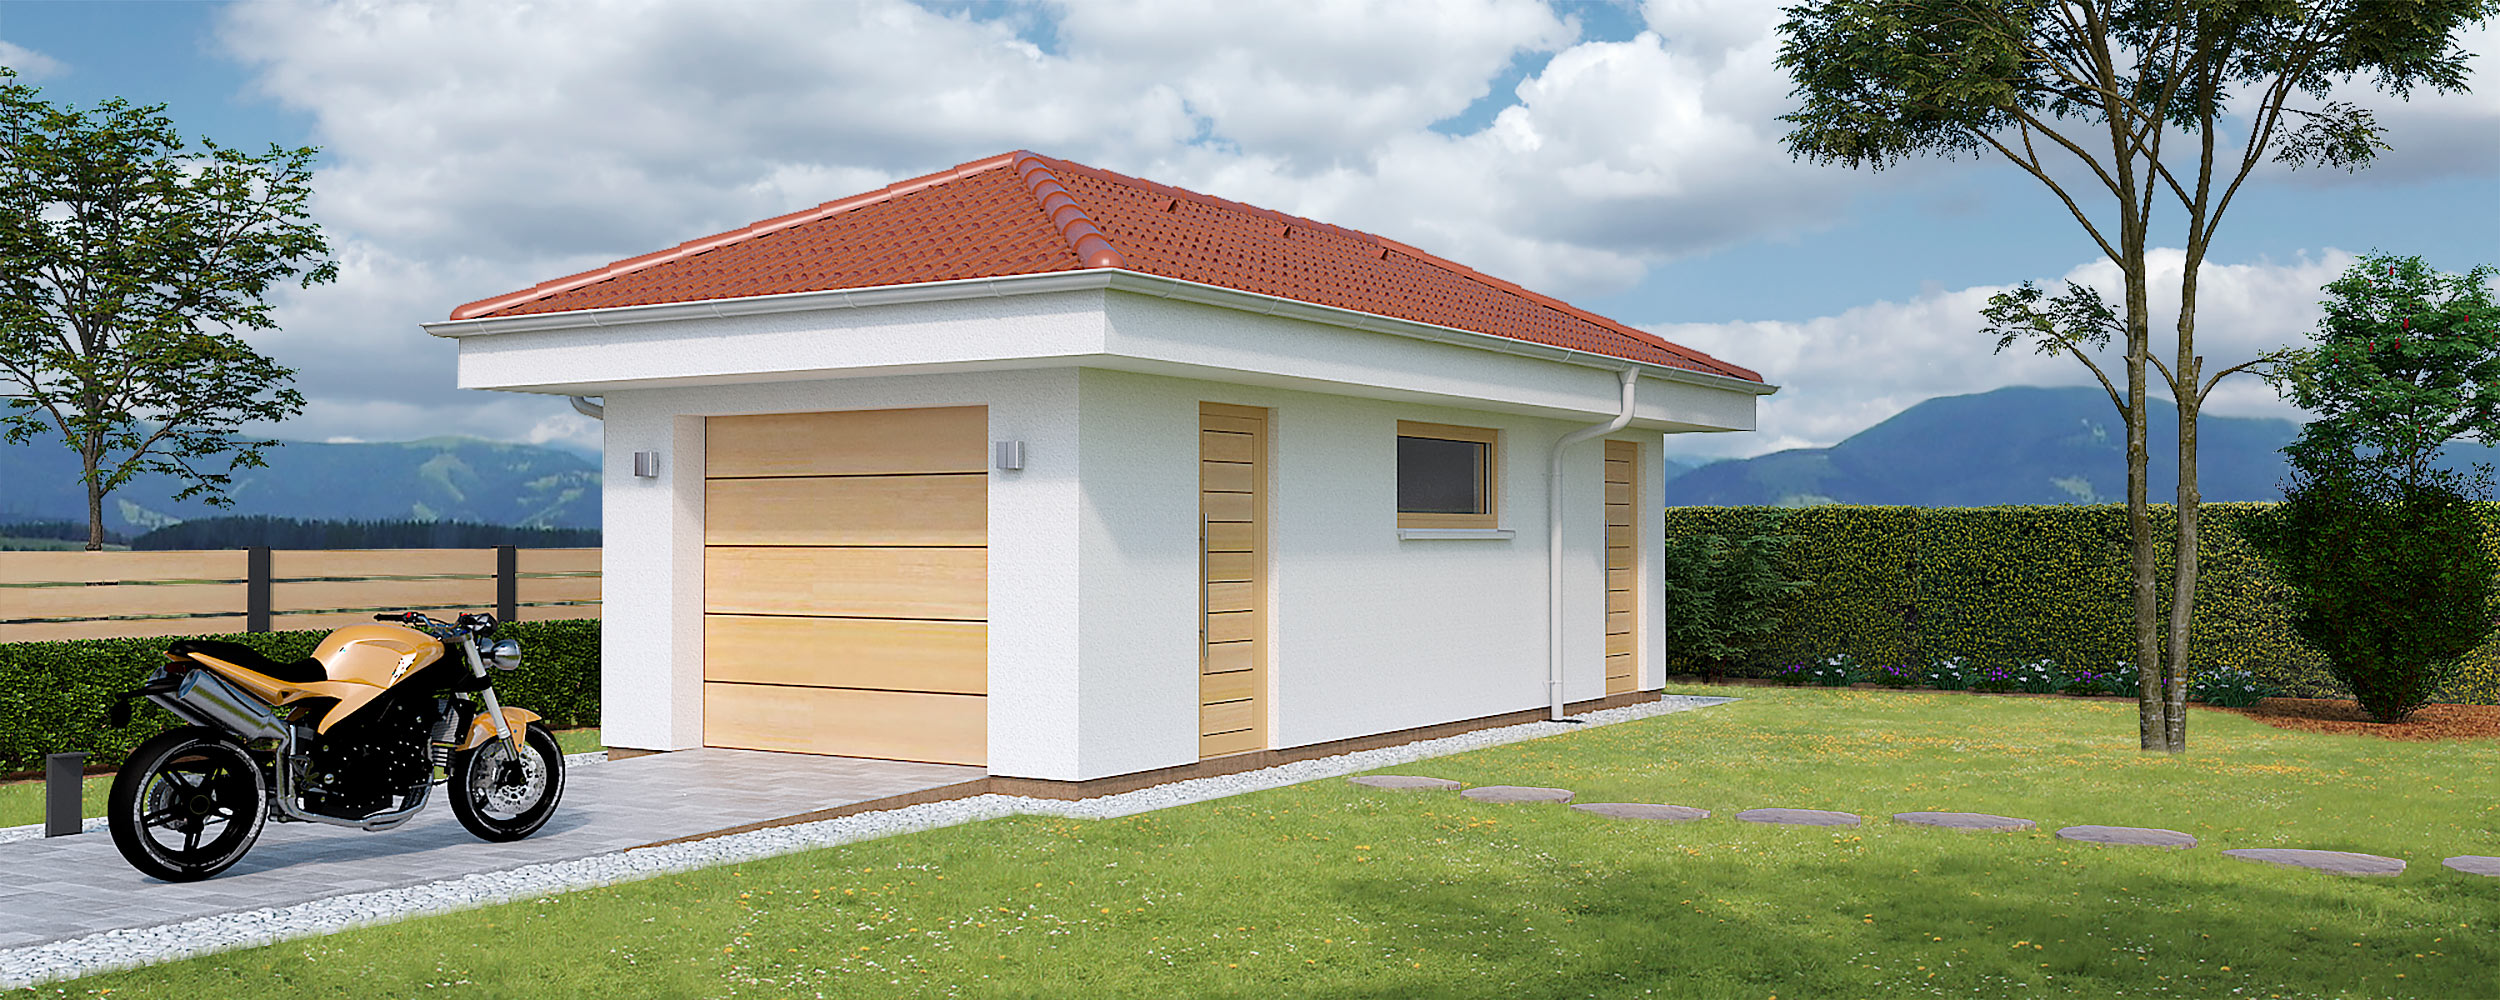 Single garage with storage